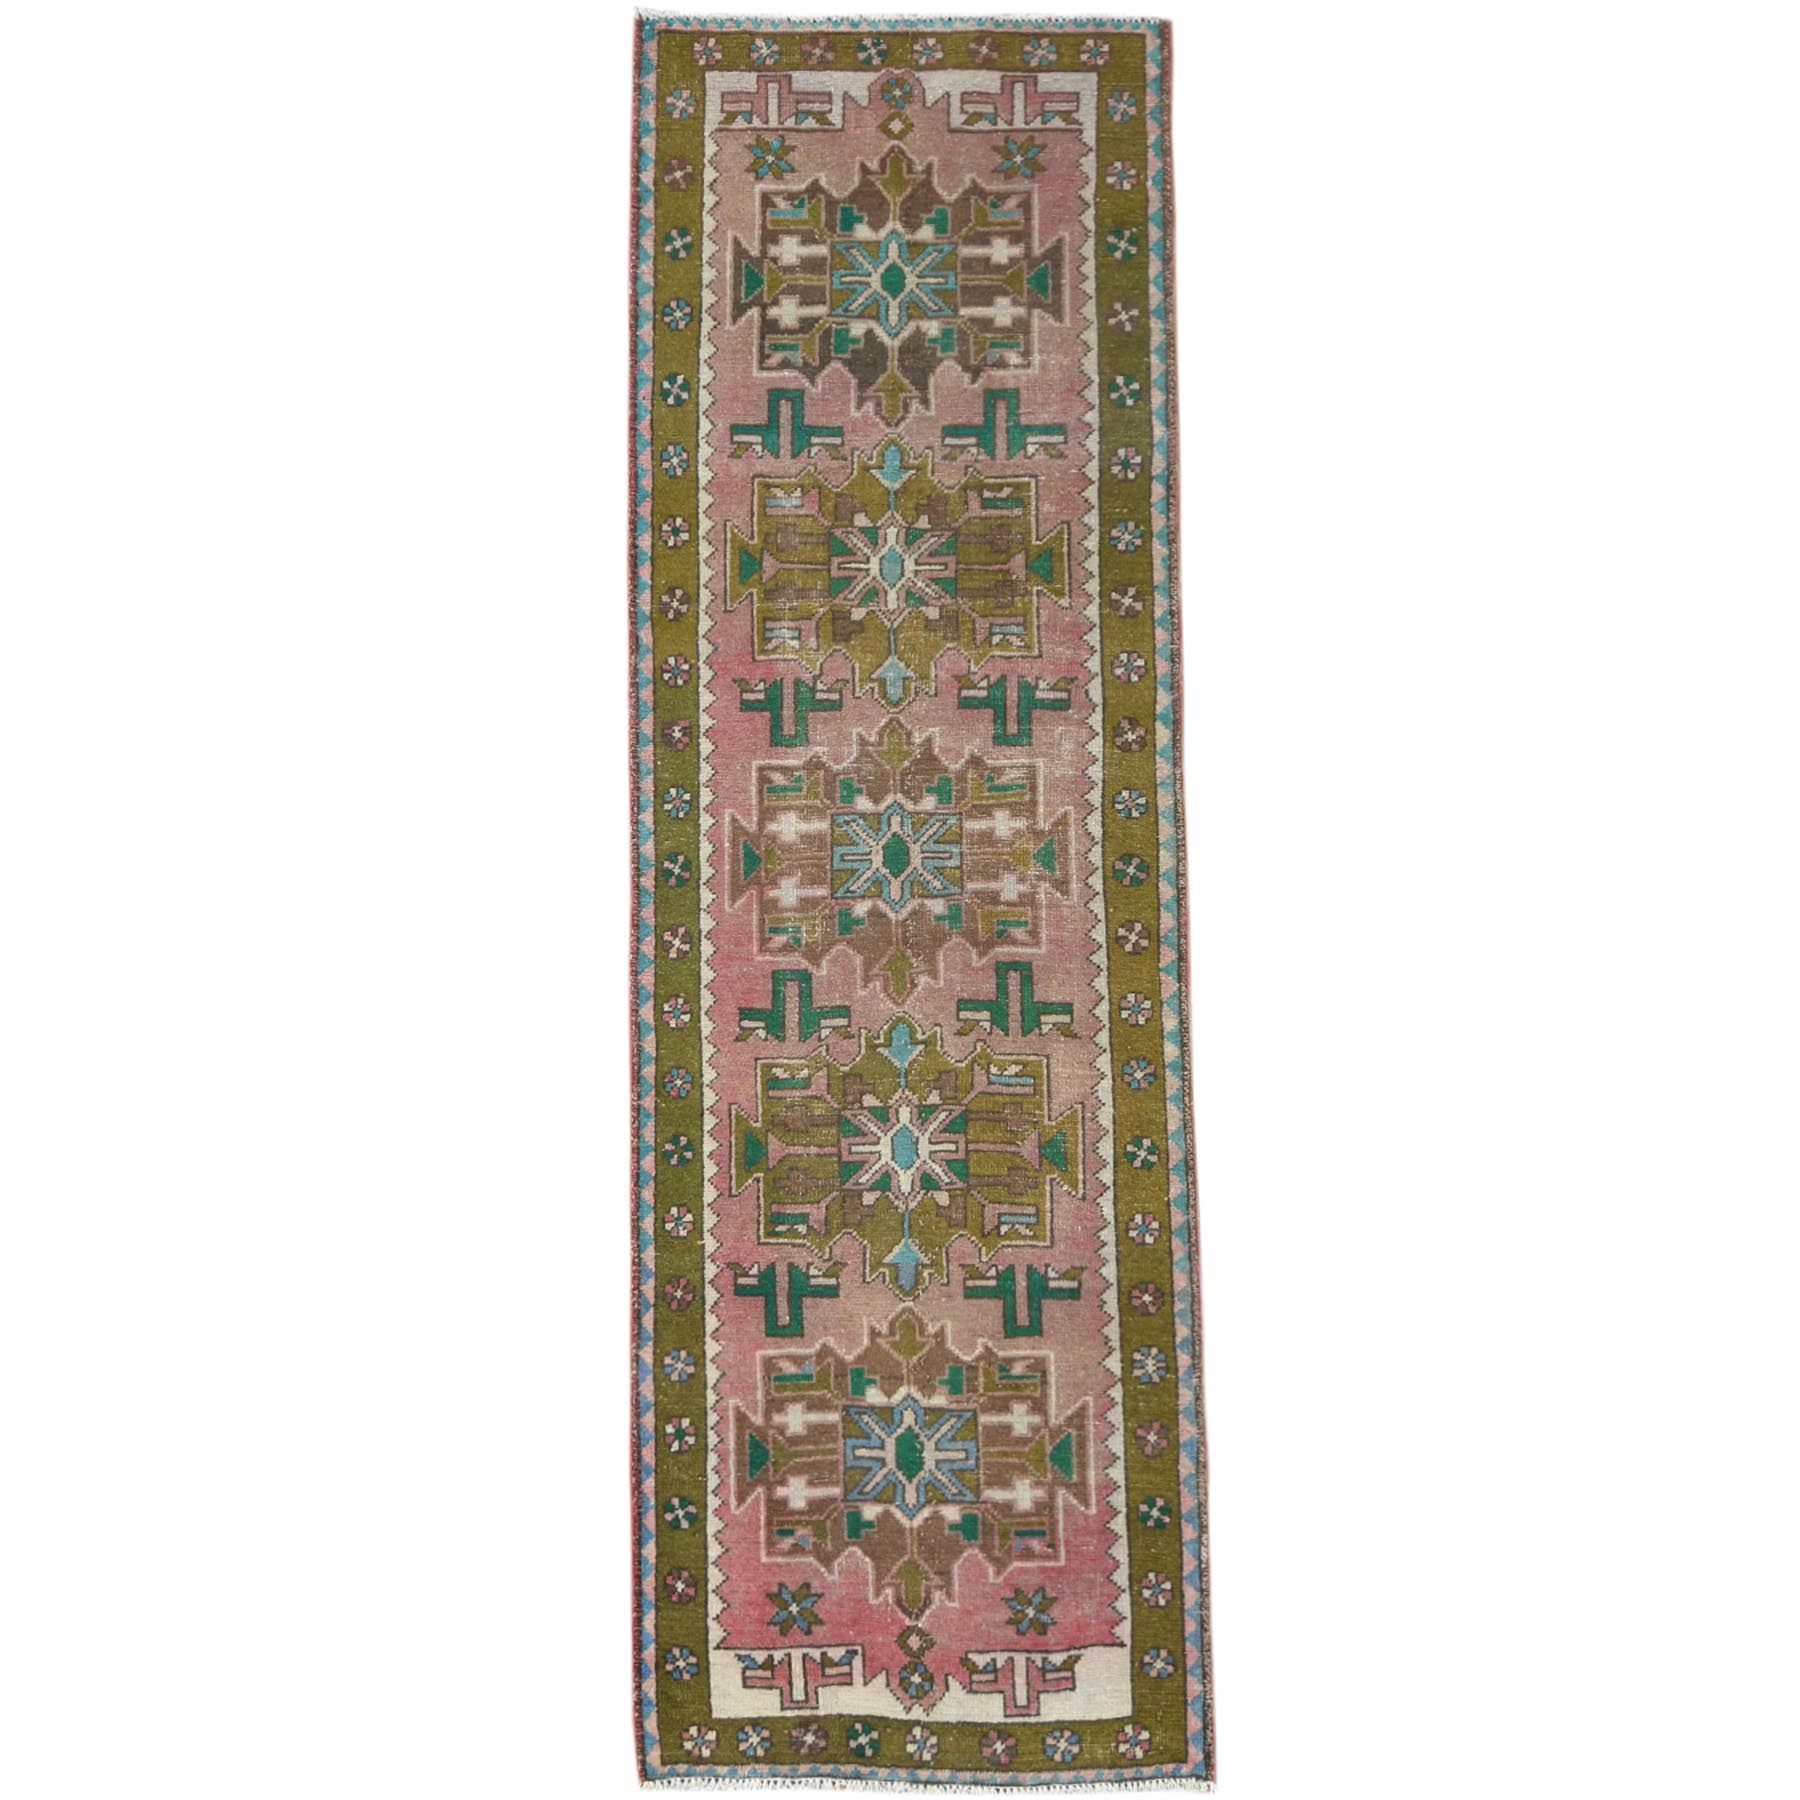 Fetneh Collection And Vintage Overdyed Collection Hand Knotted Pink Rug No: 1121008